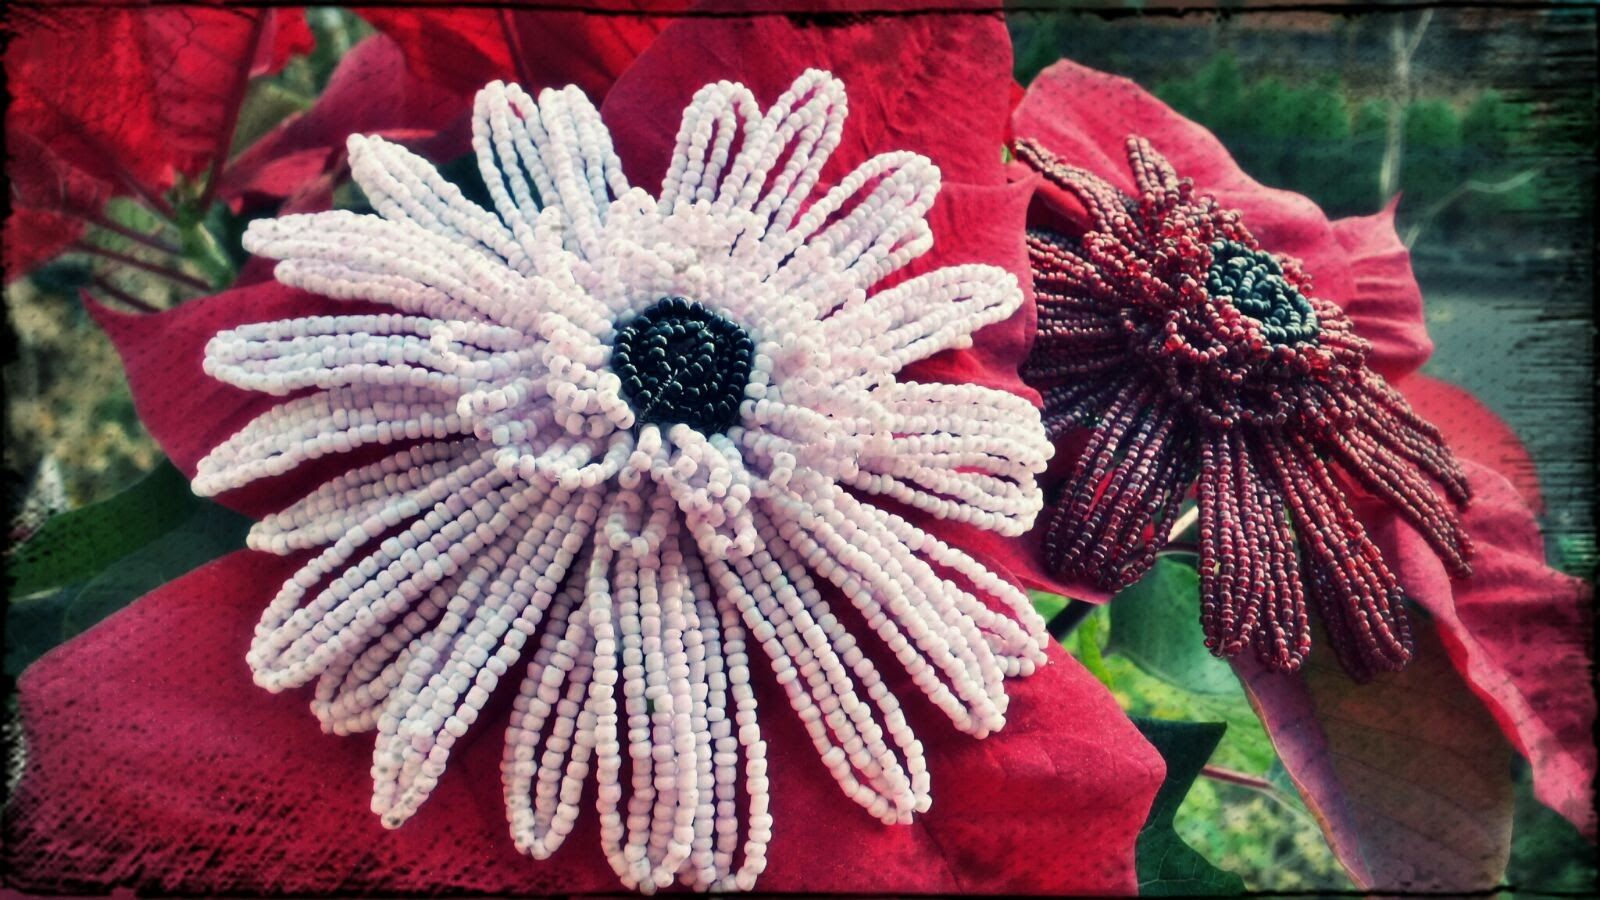 How to make a beaded gerbera daisy flower | bead weaving patterns ...